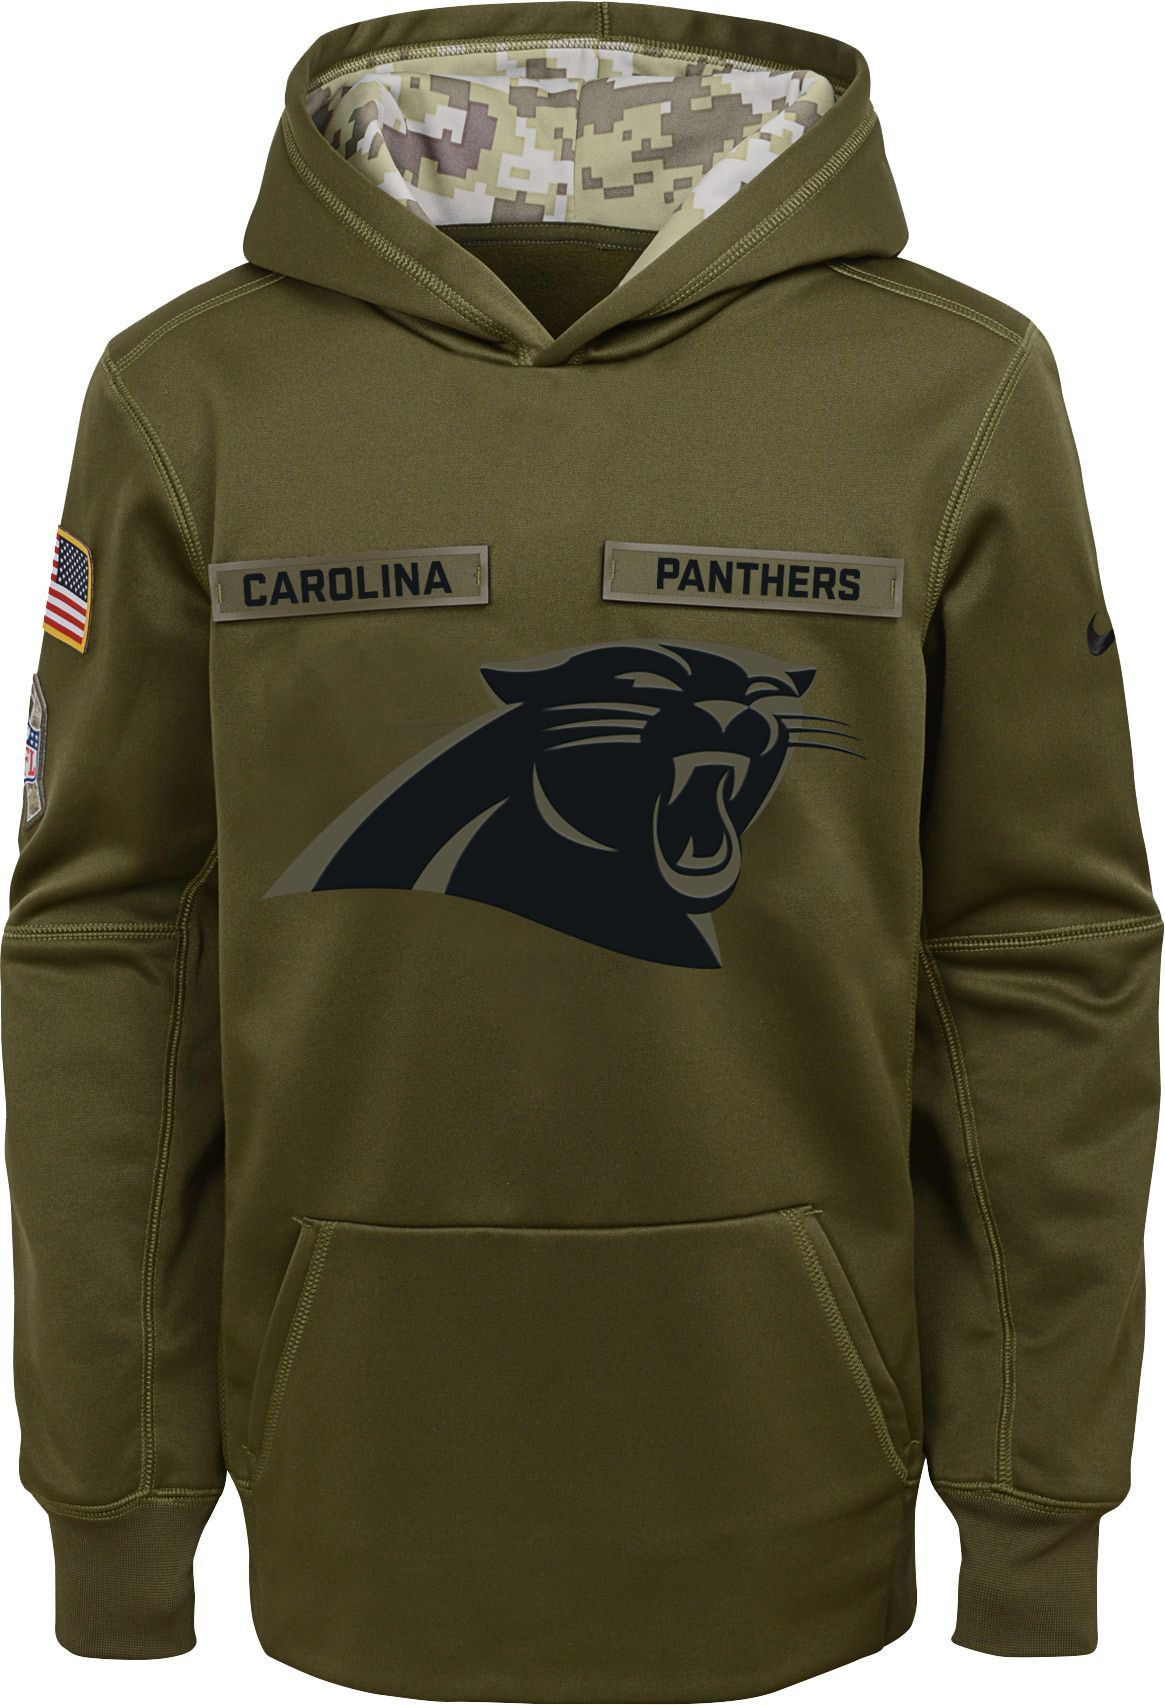 super popular d22e3 38778 Nike Youth Salute to Service Carolina Therma-FIT Olive ...